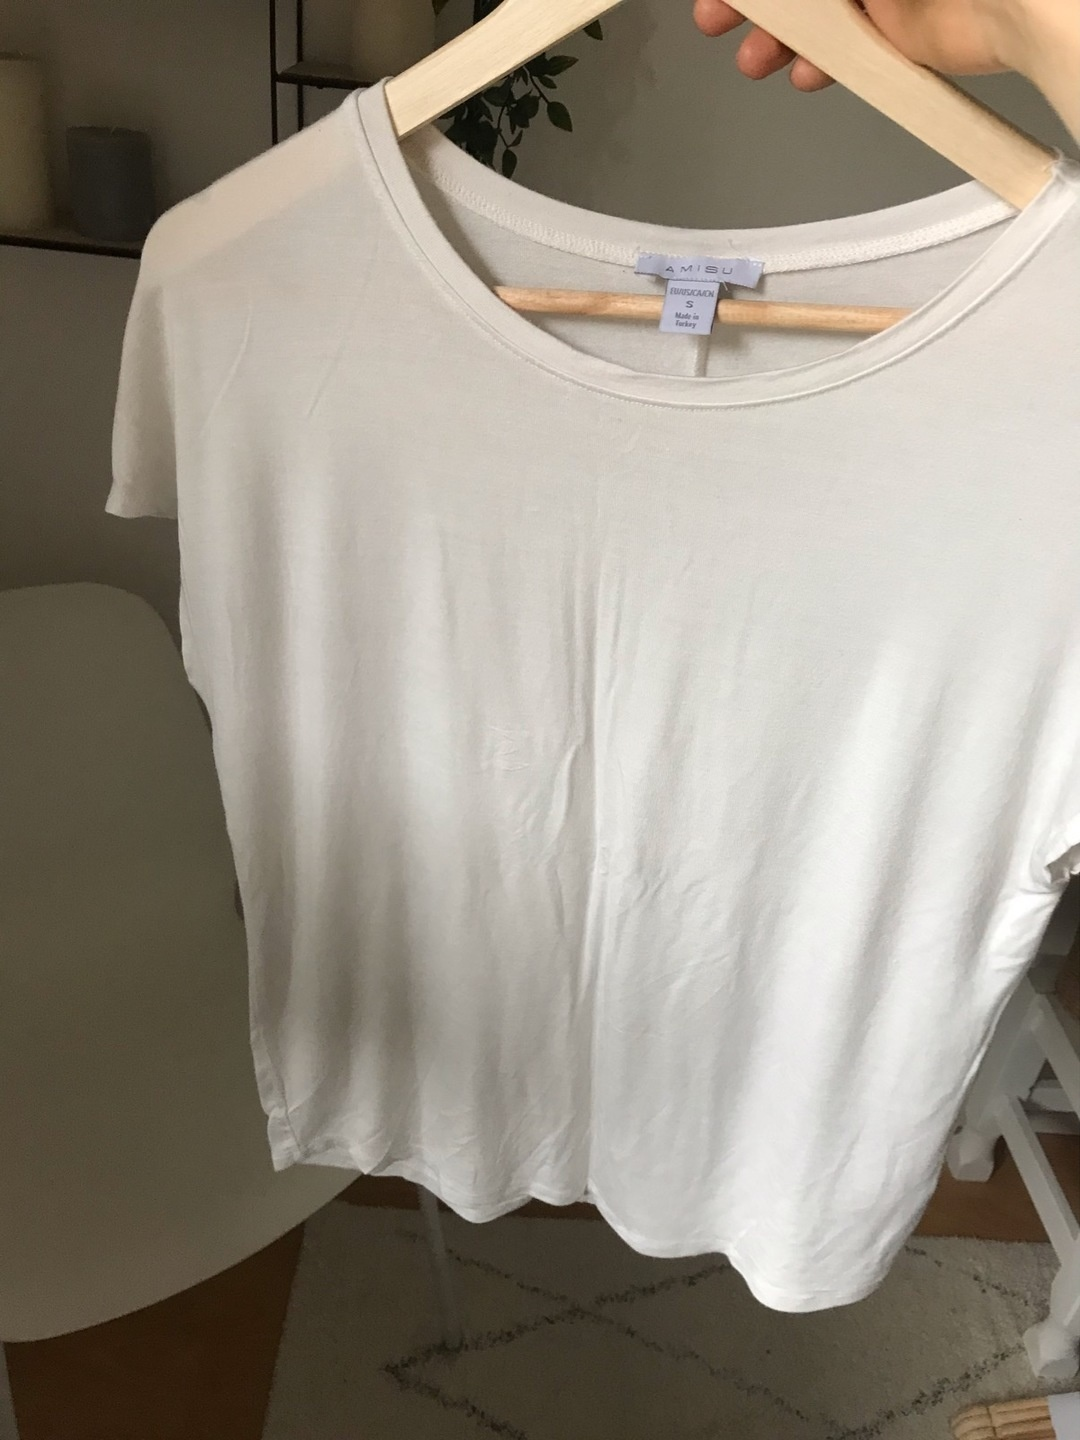 Damers toppe og t-shirts - PIECES photo 4